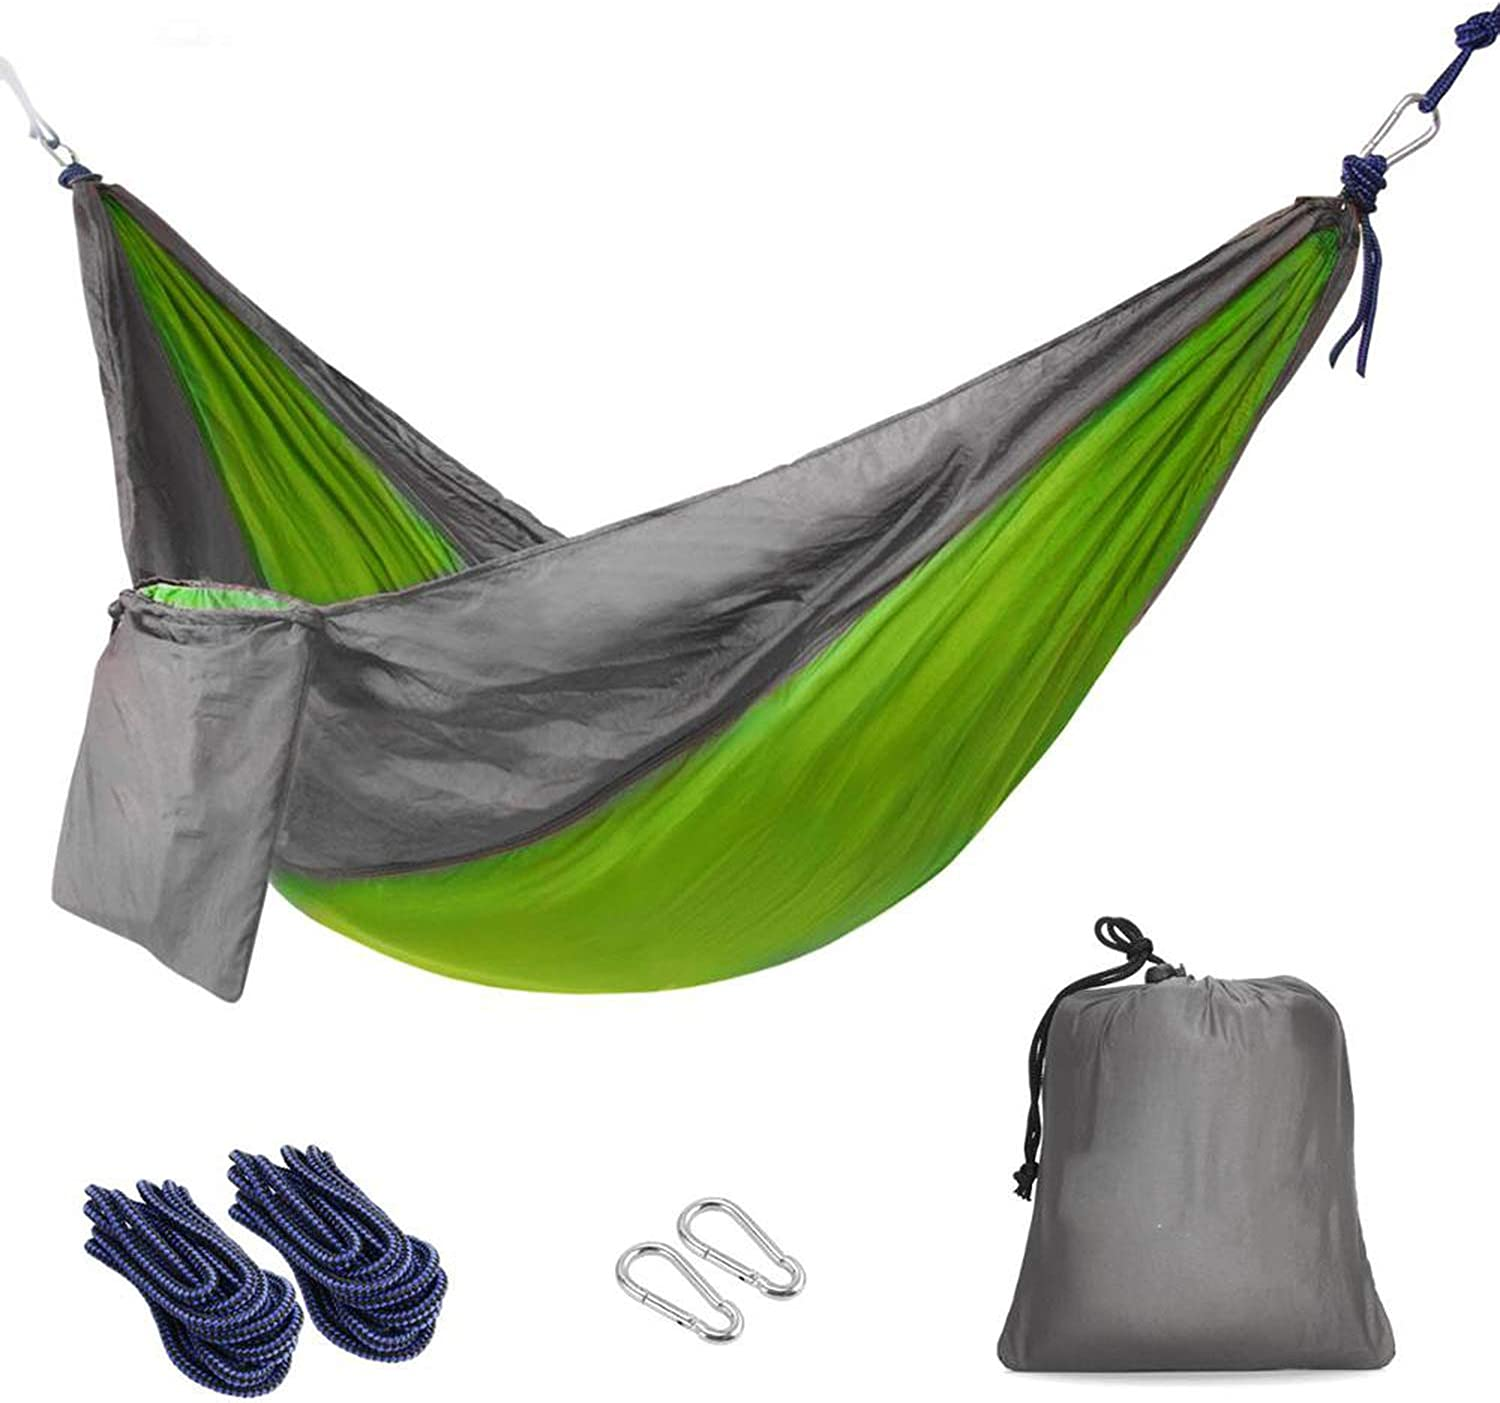 12 Person hammocks Outdoor Camping Hiking Sleeping Bed Picnic Swing Single Tent Red, Green 230  90CM